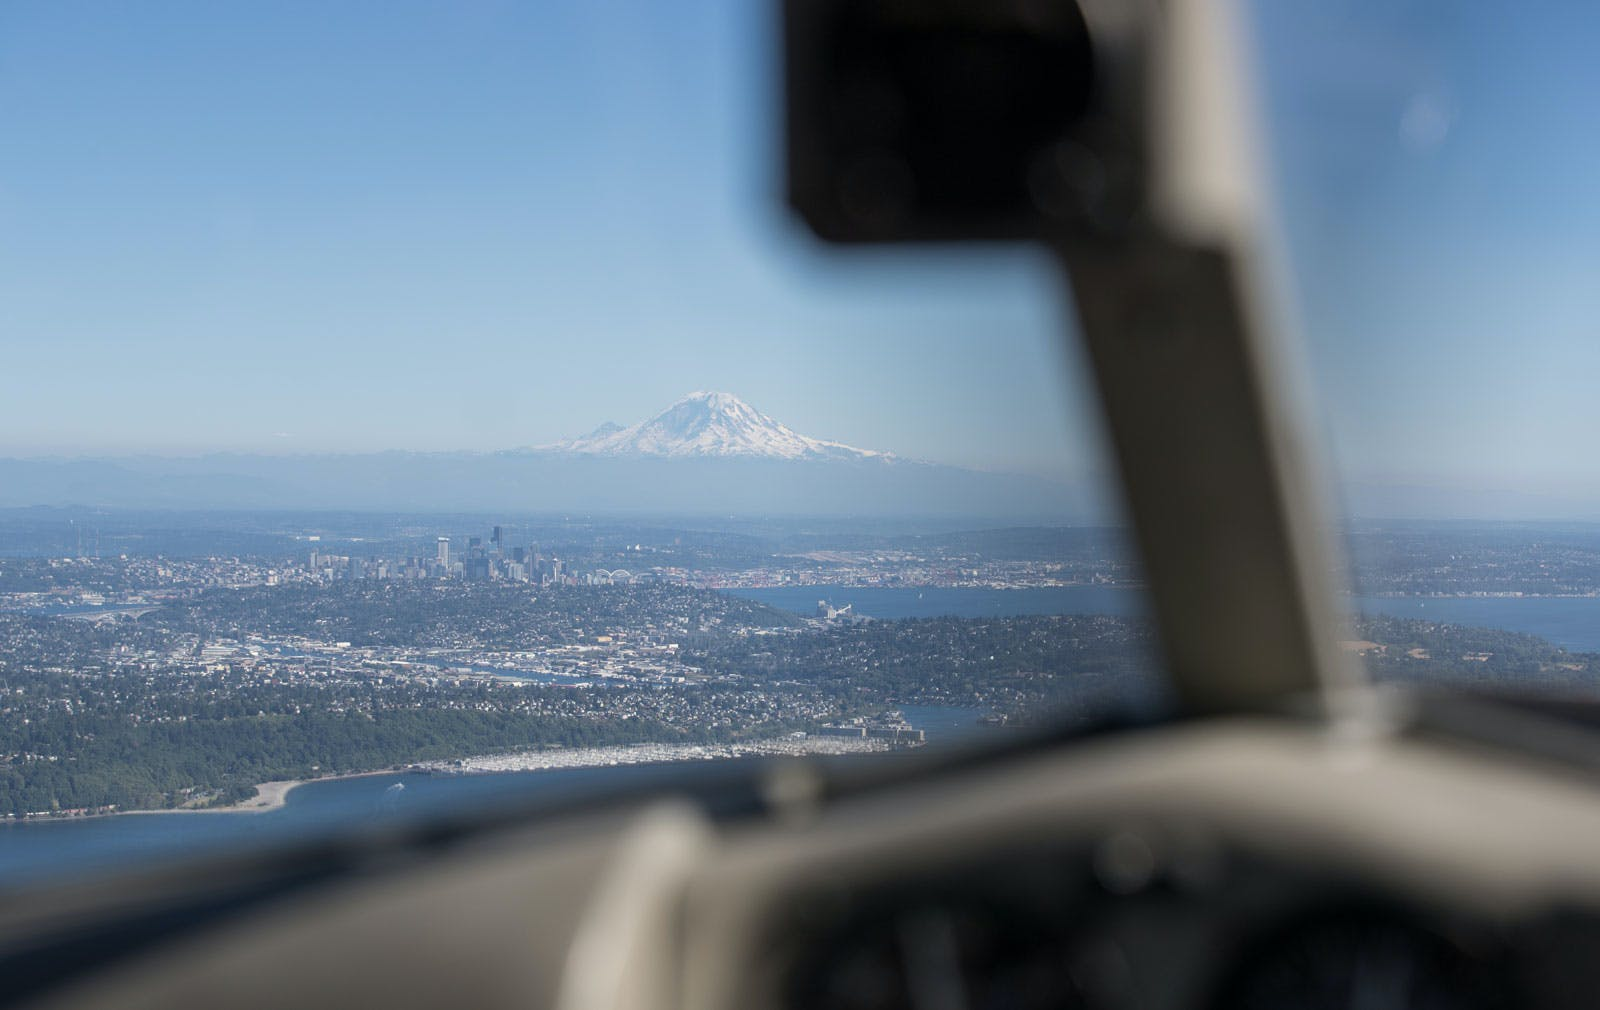 OX MobileAppSummit Photo7 - Exploring Seattle and Mobile Programmatic Opportunities (In That Order)